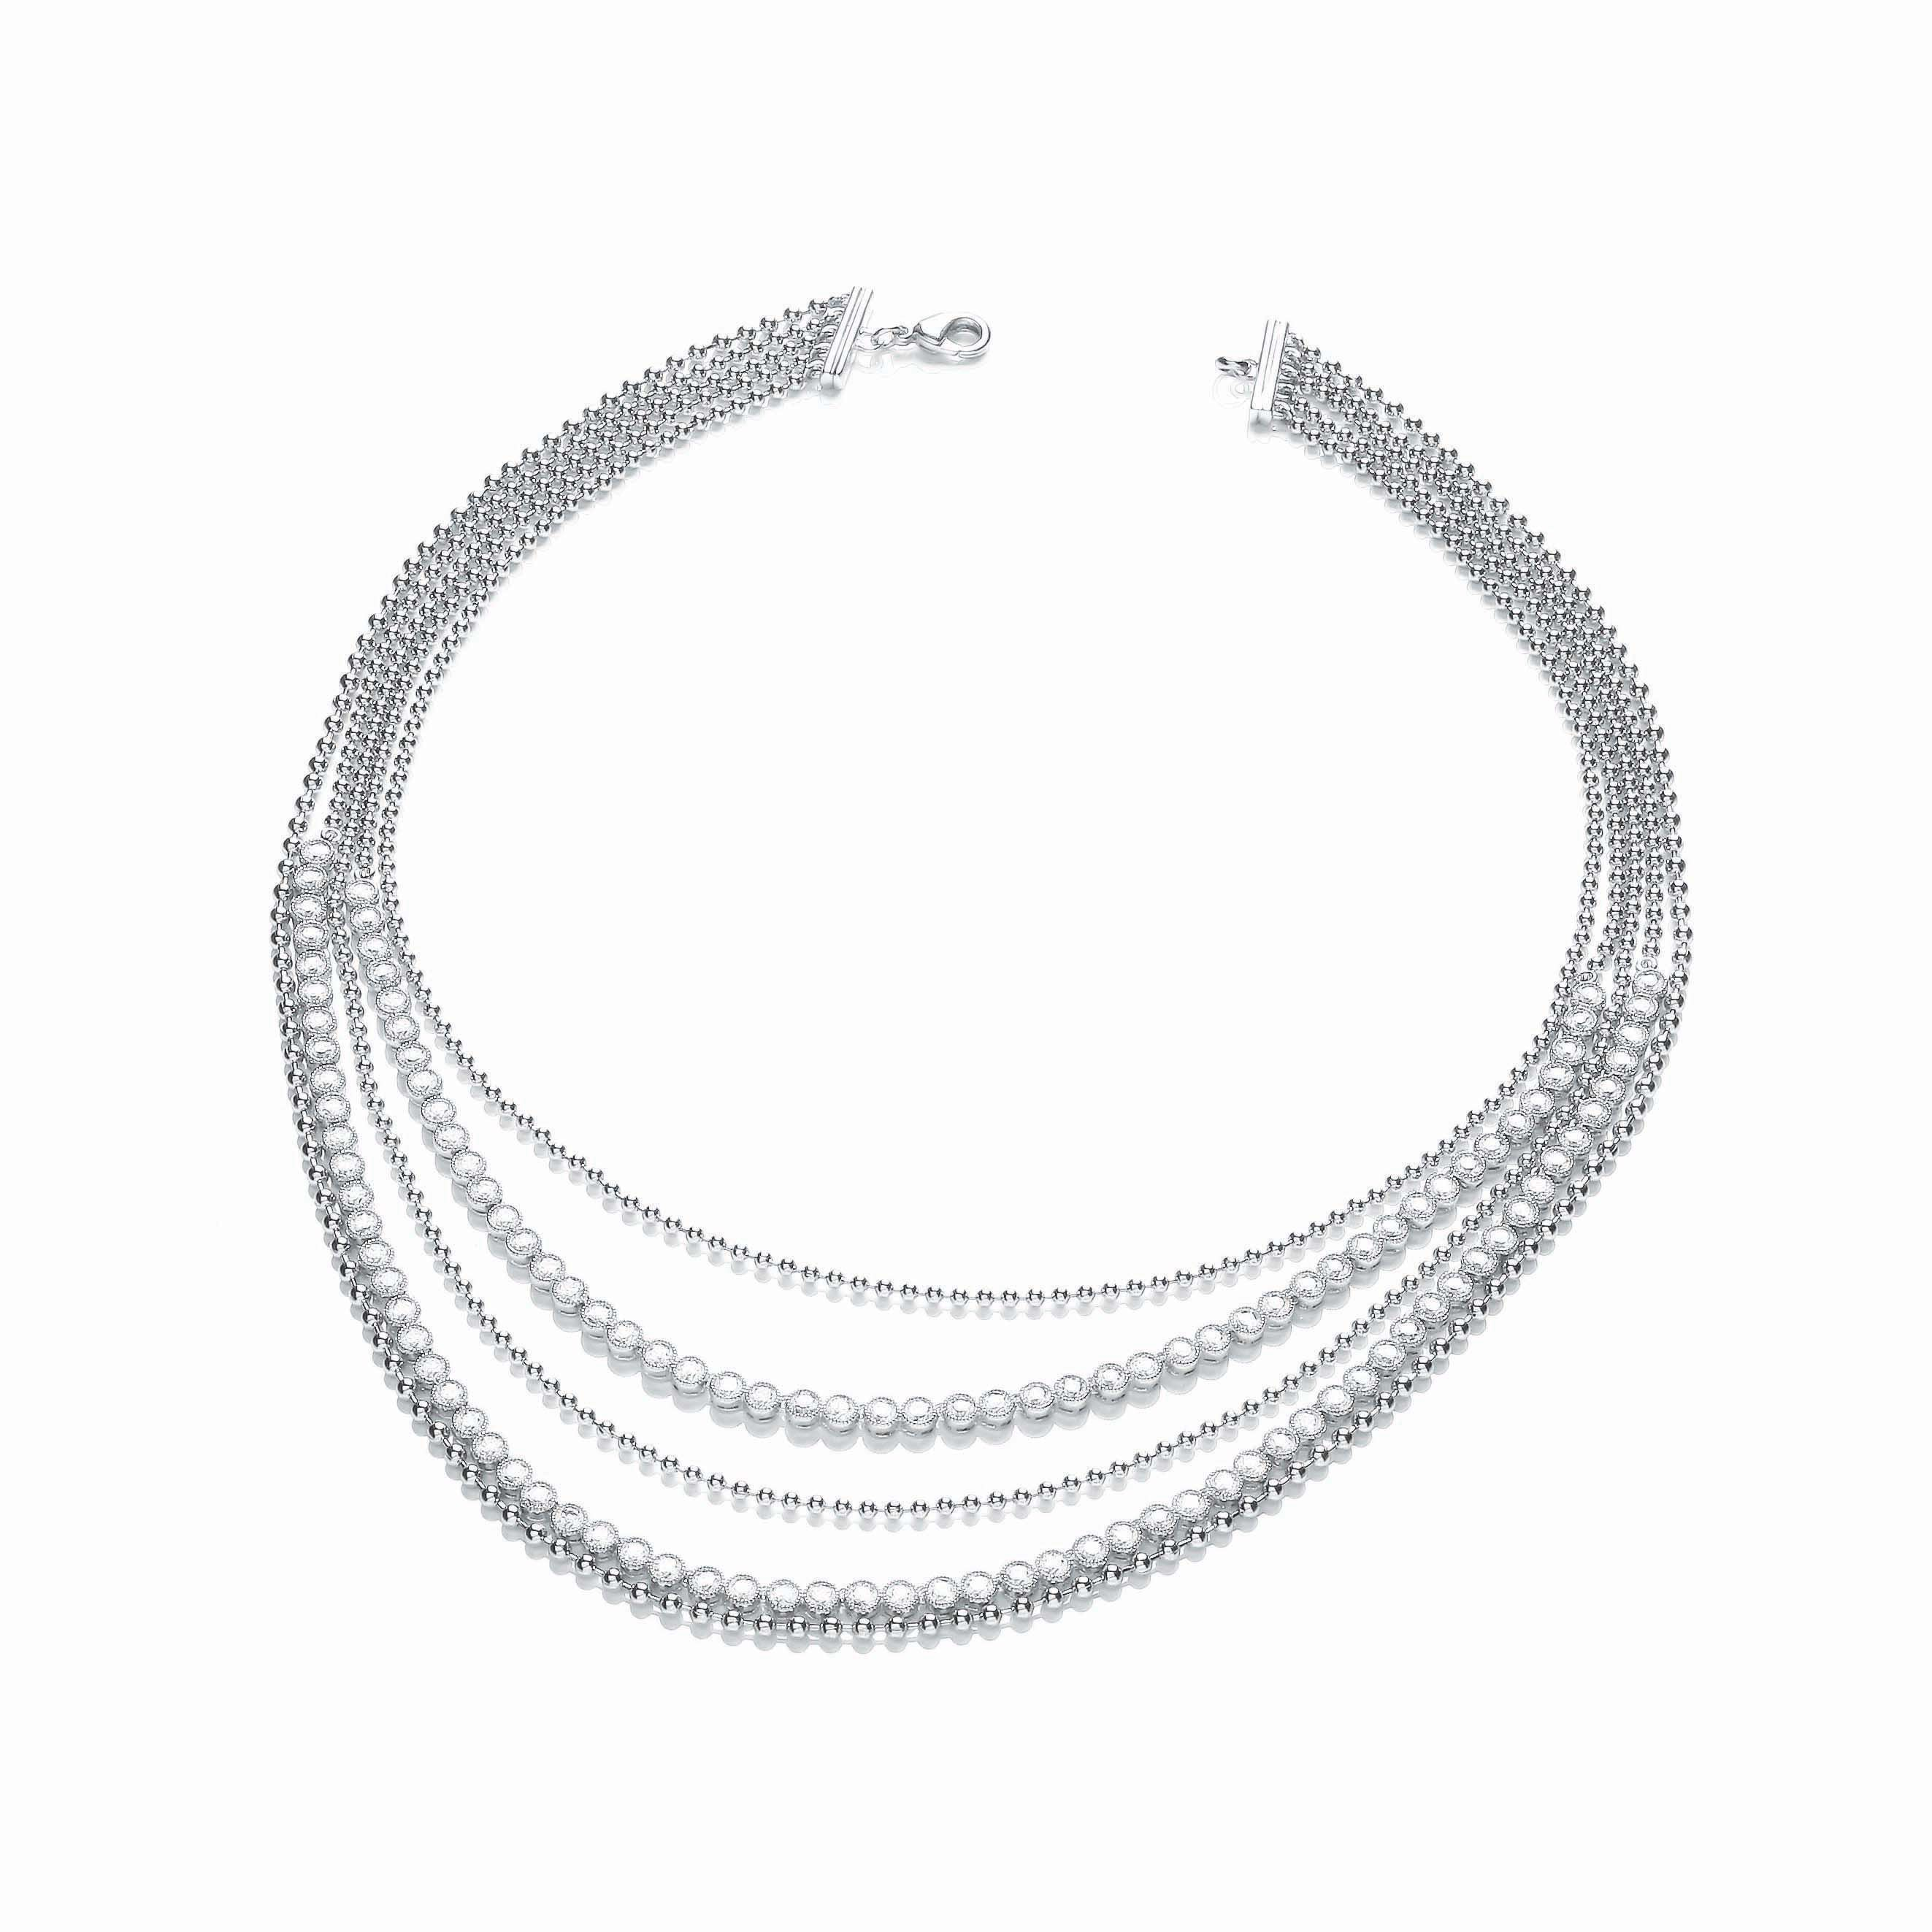 Rhodium sparkle beaded necklace